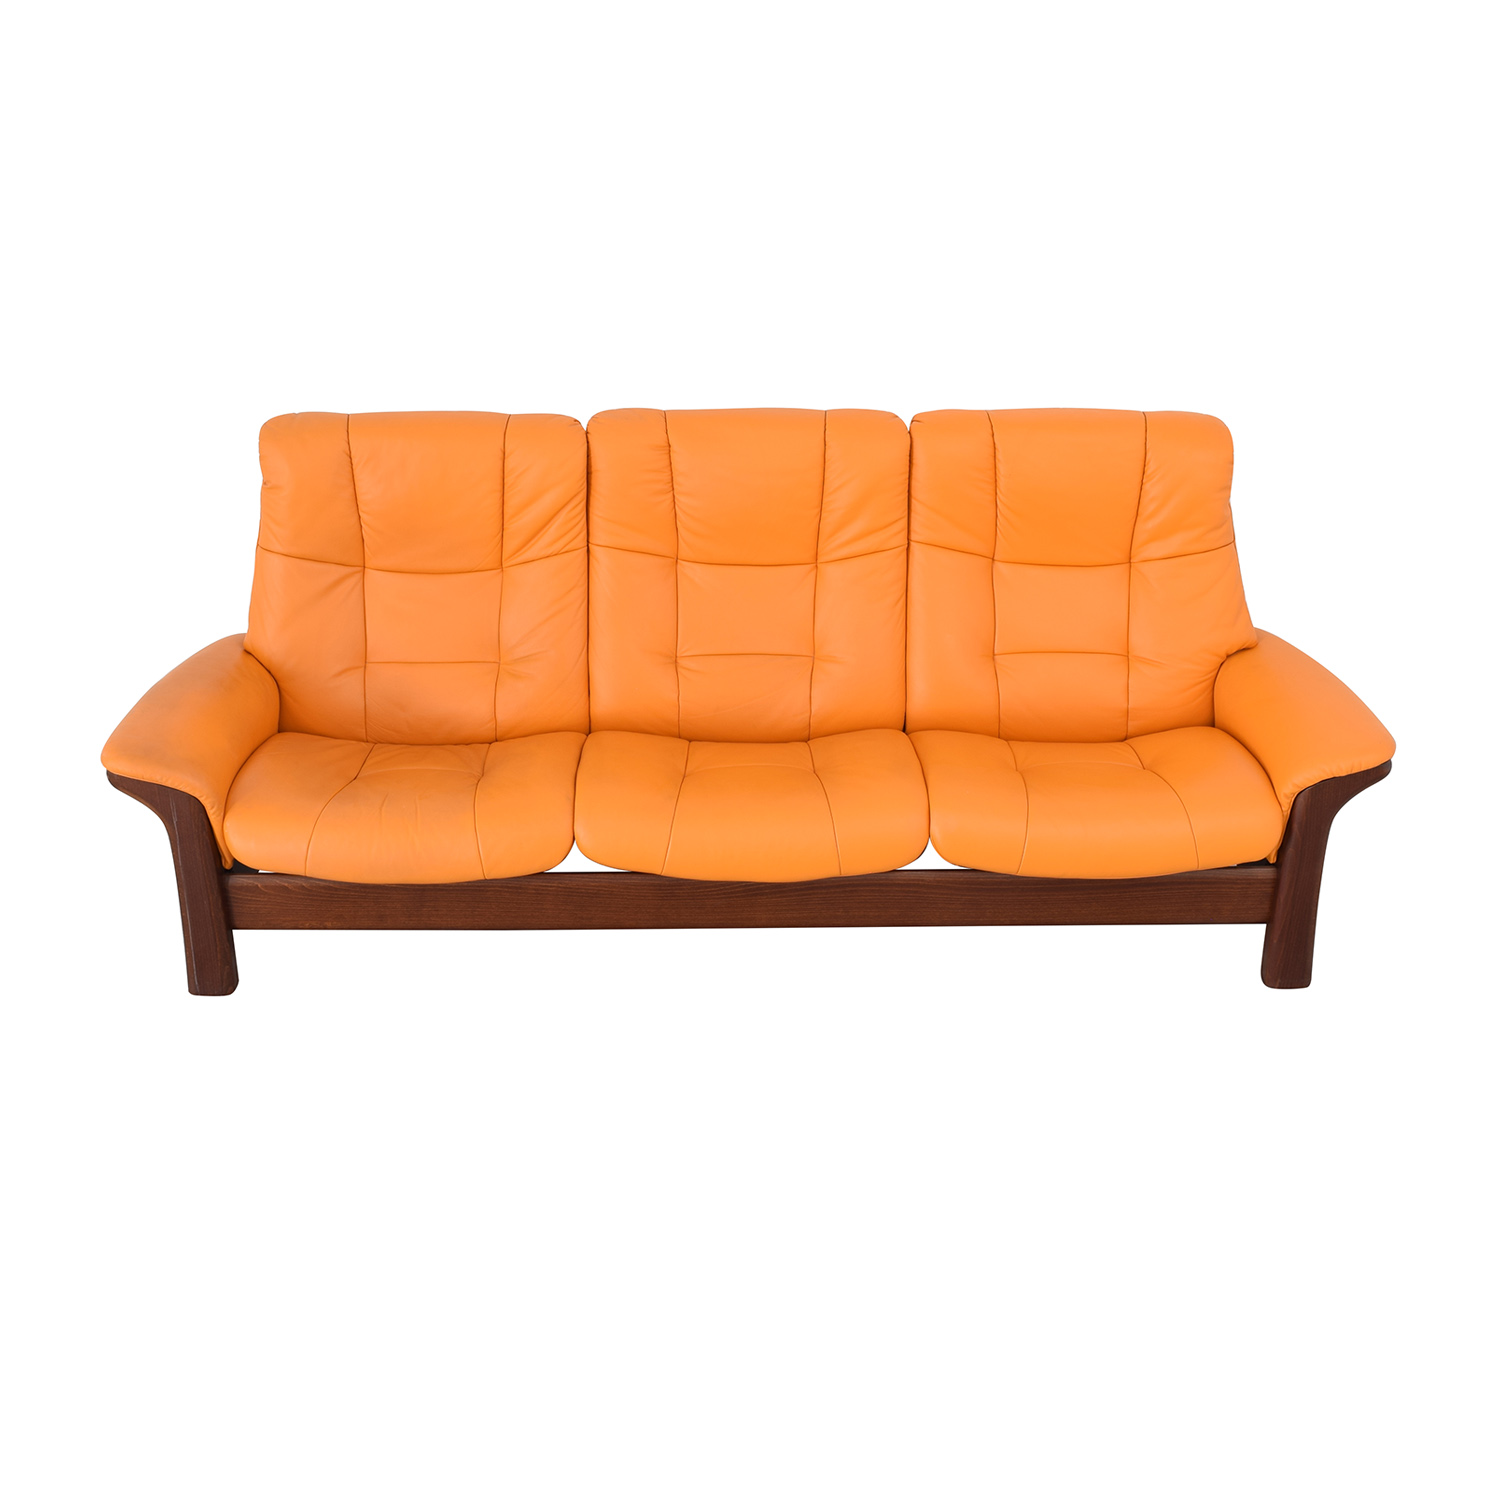 Ekornes Ekornes Buckingham High Back Sofa for sale